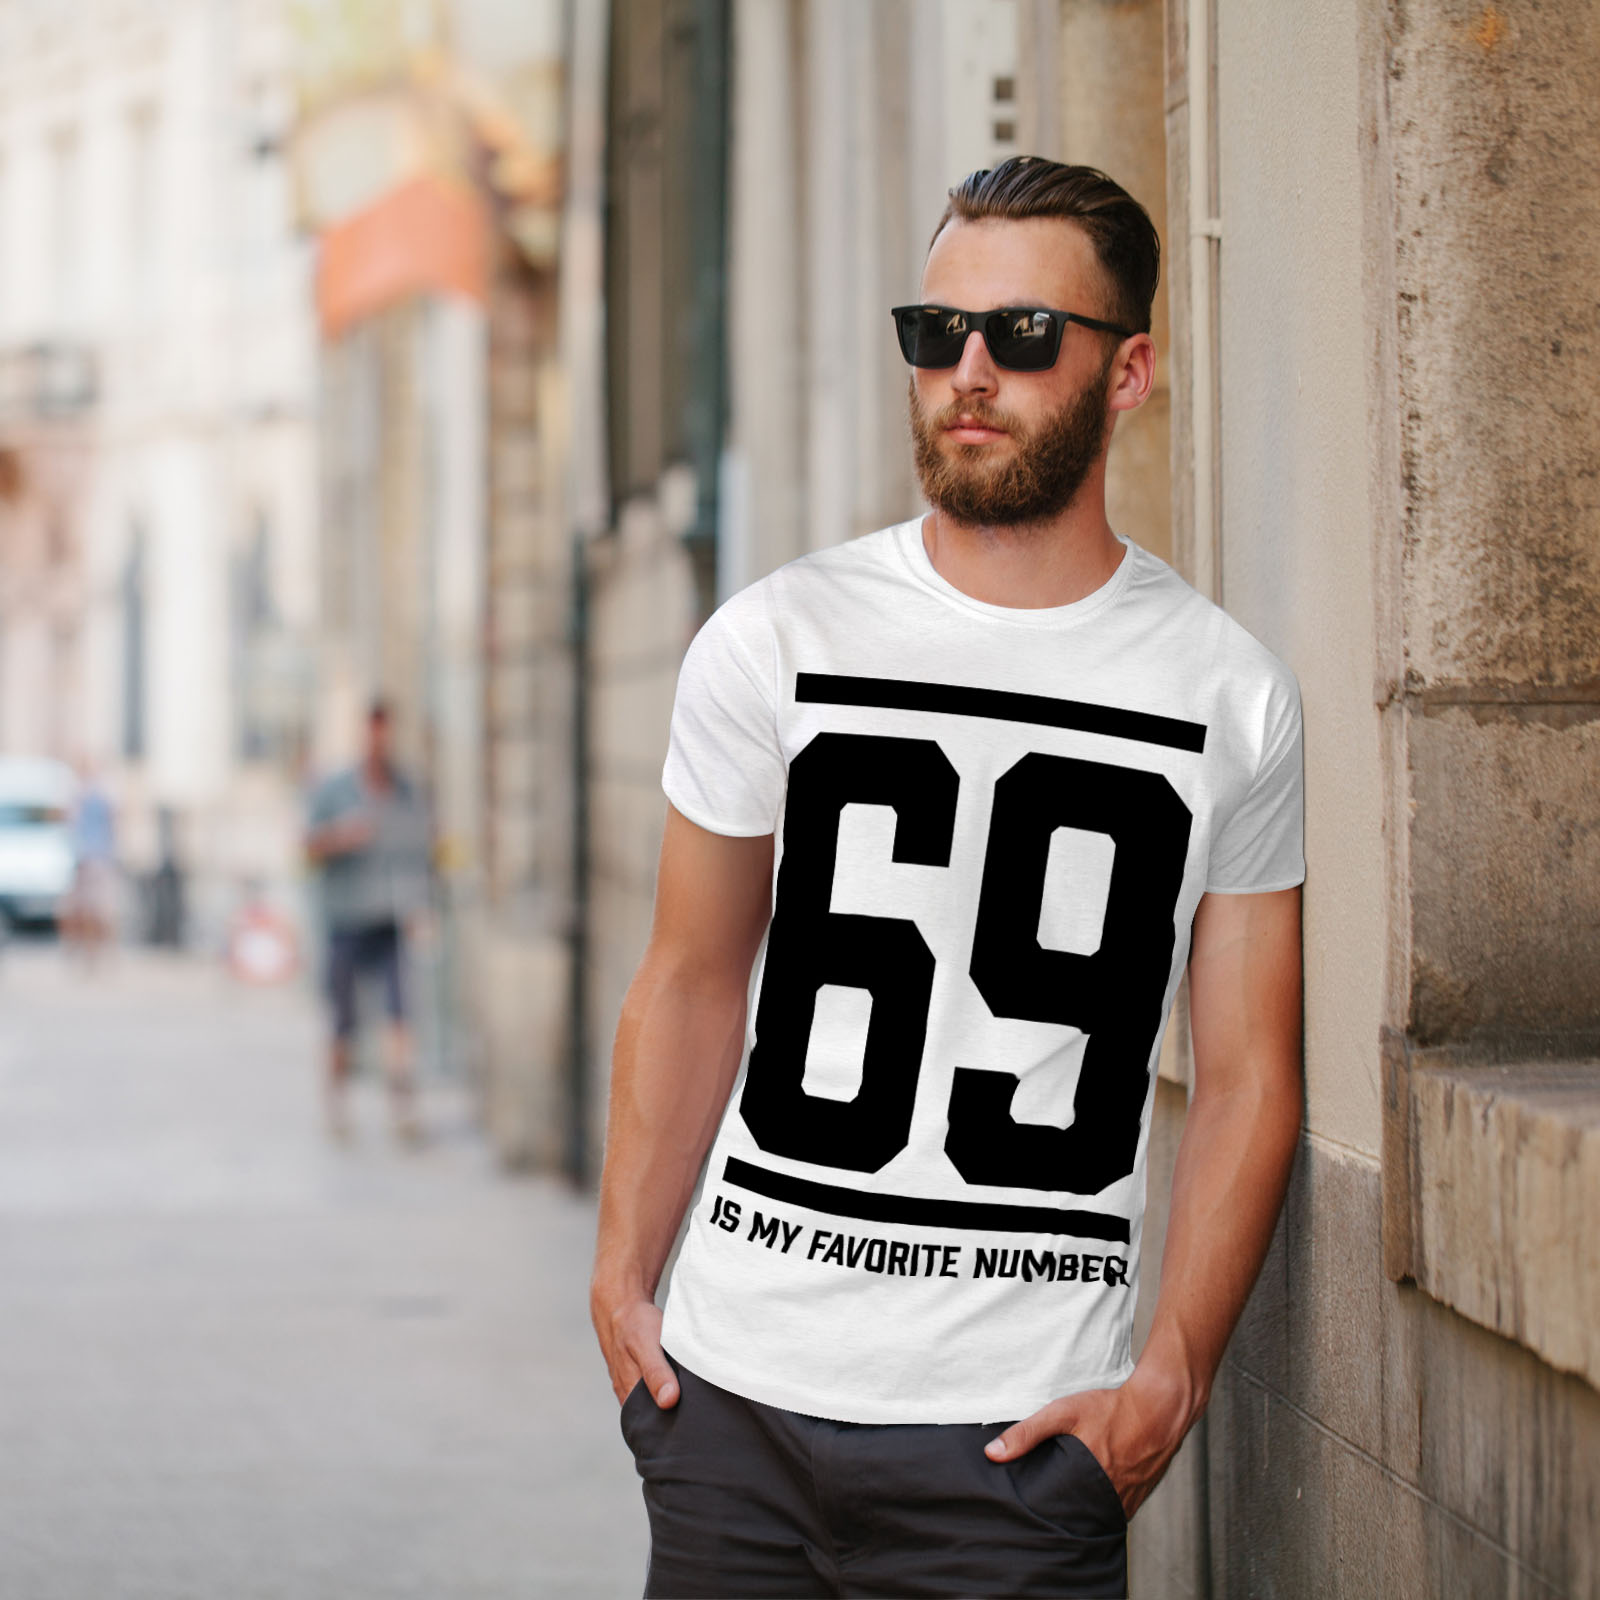 Wellcoda-69-Favorite-Number-Mens-T-shirt-Sports-Graphic-Design-Printed-Tee thumbnail 11